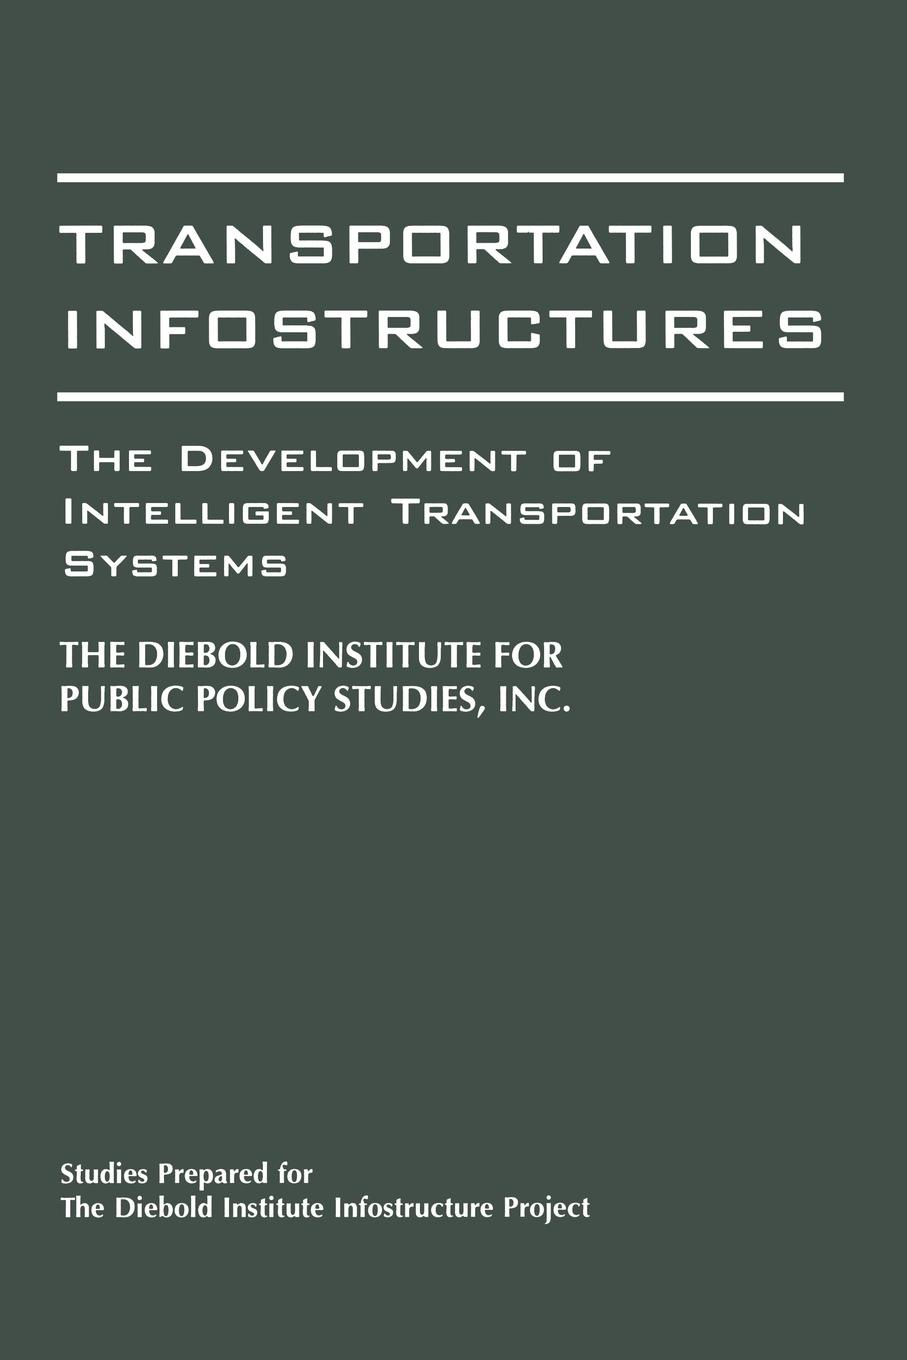 John Diebold, Diebold Transportation Infostructures. The Development of Intelligent Transportation Systems все цены